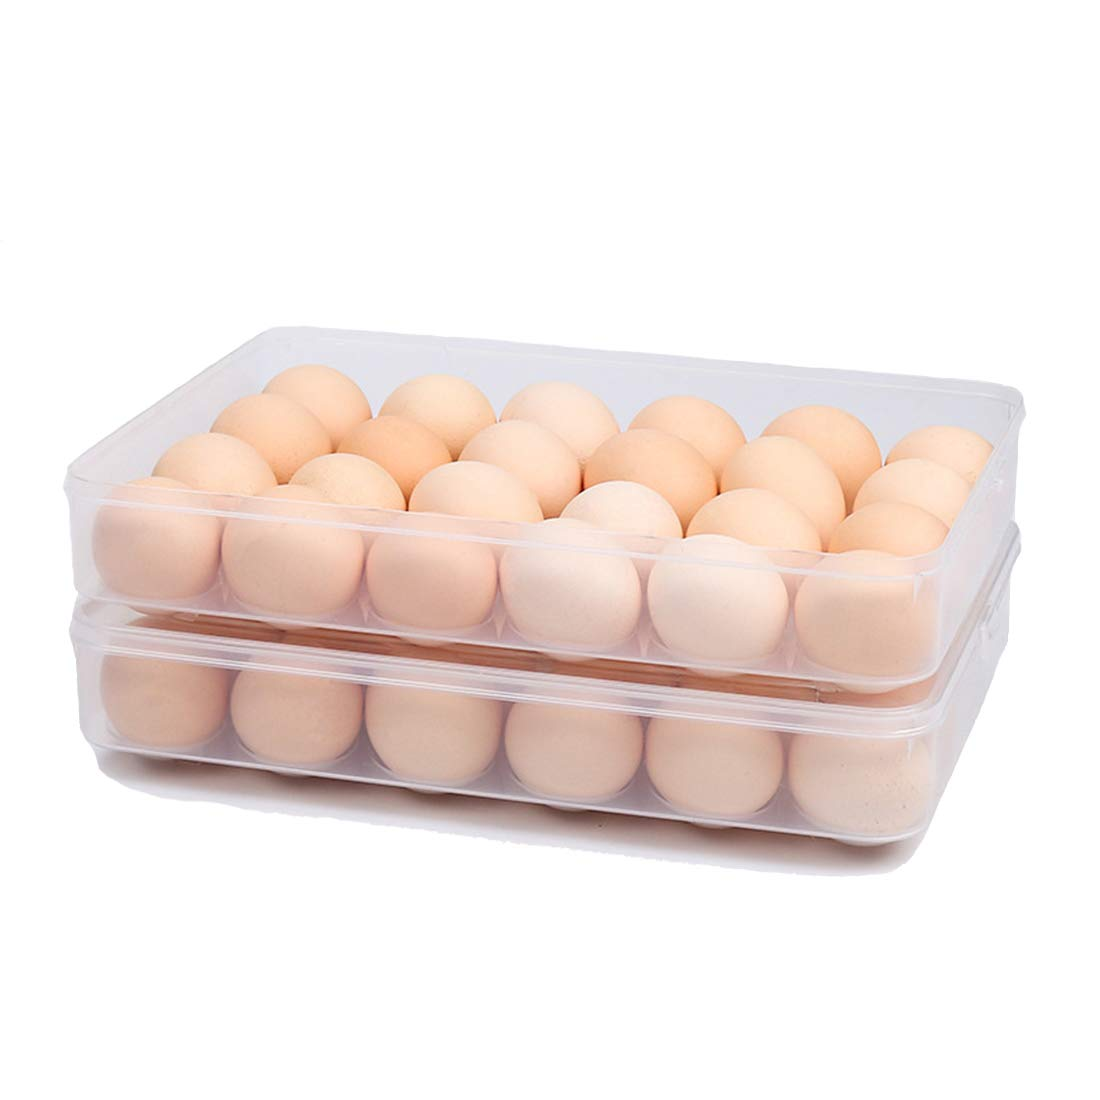 STARSLIFE Egg Holder for Refrigerator with Lid, Covered Eggs Tray Carrier Food Storage Containers, Plastic Stackable Organizer Case Protect and Keep Fresh for Fridge, Total Stores 48 eggs (Pack of 2)